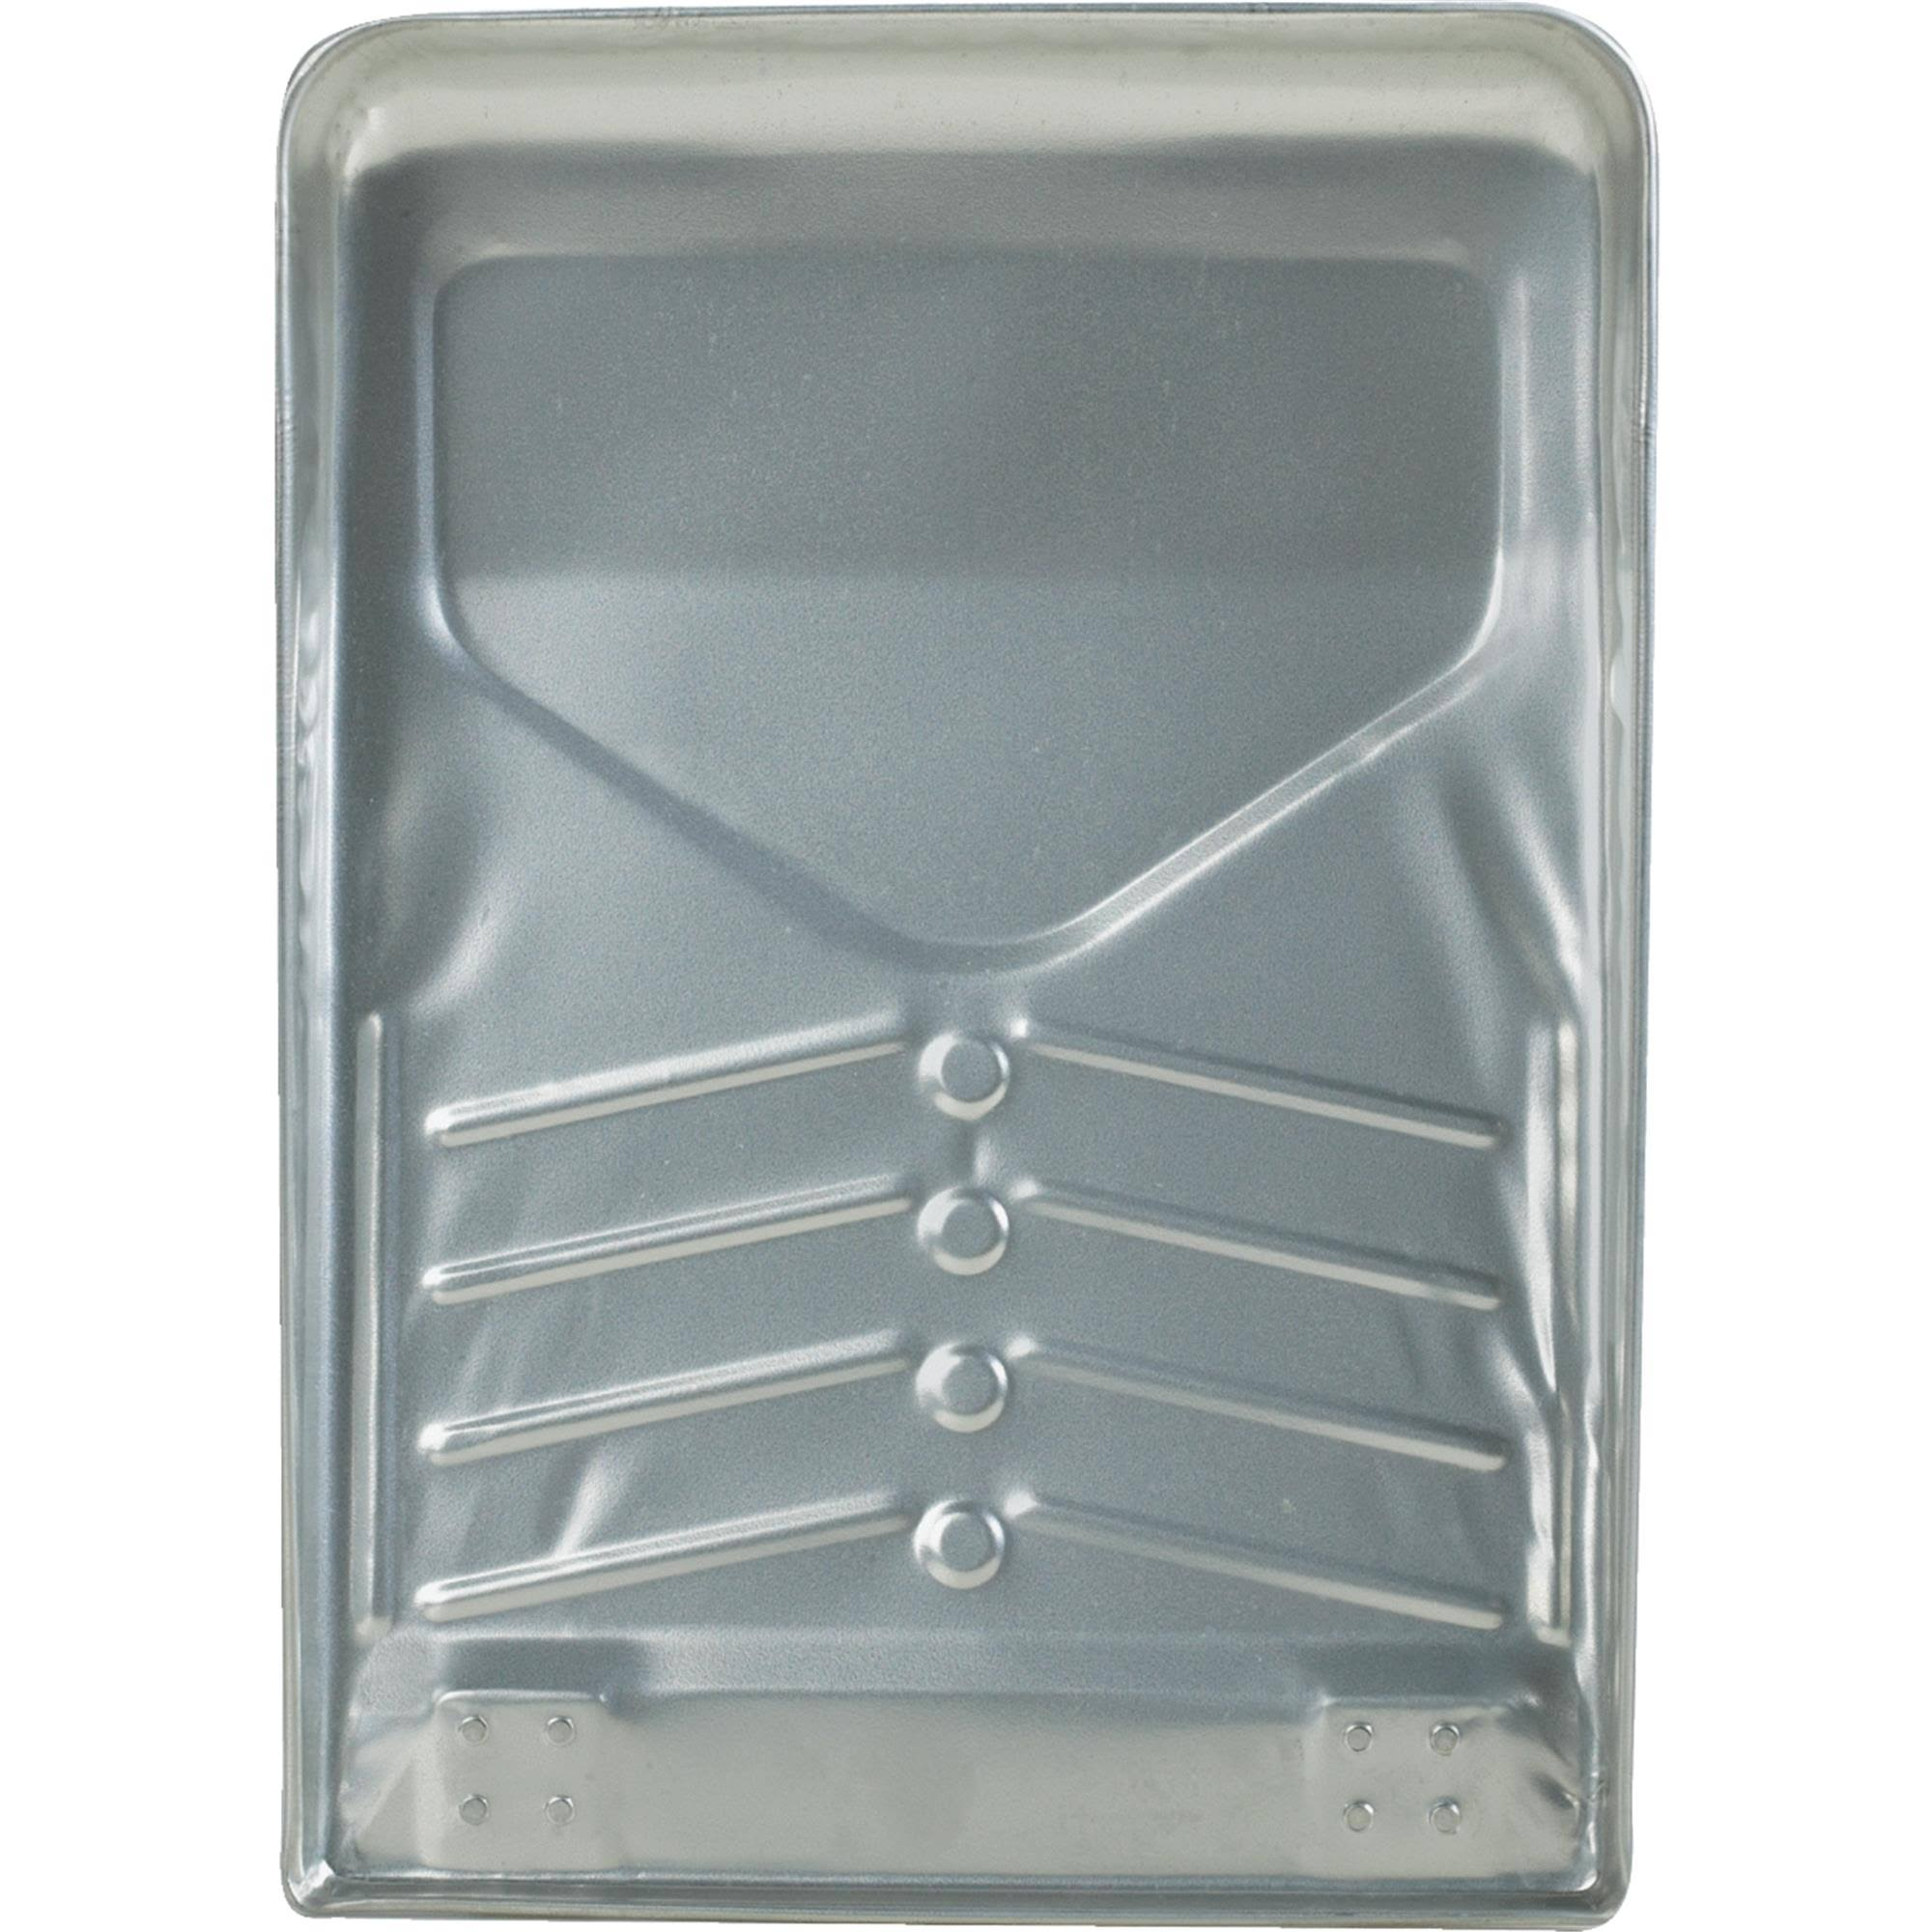 Shur-Line Paint Tray - Metal